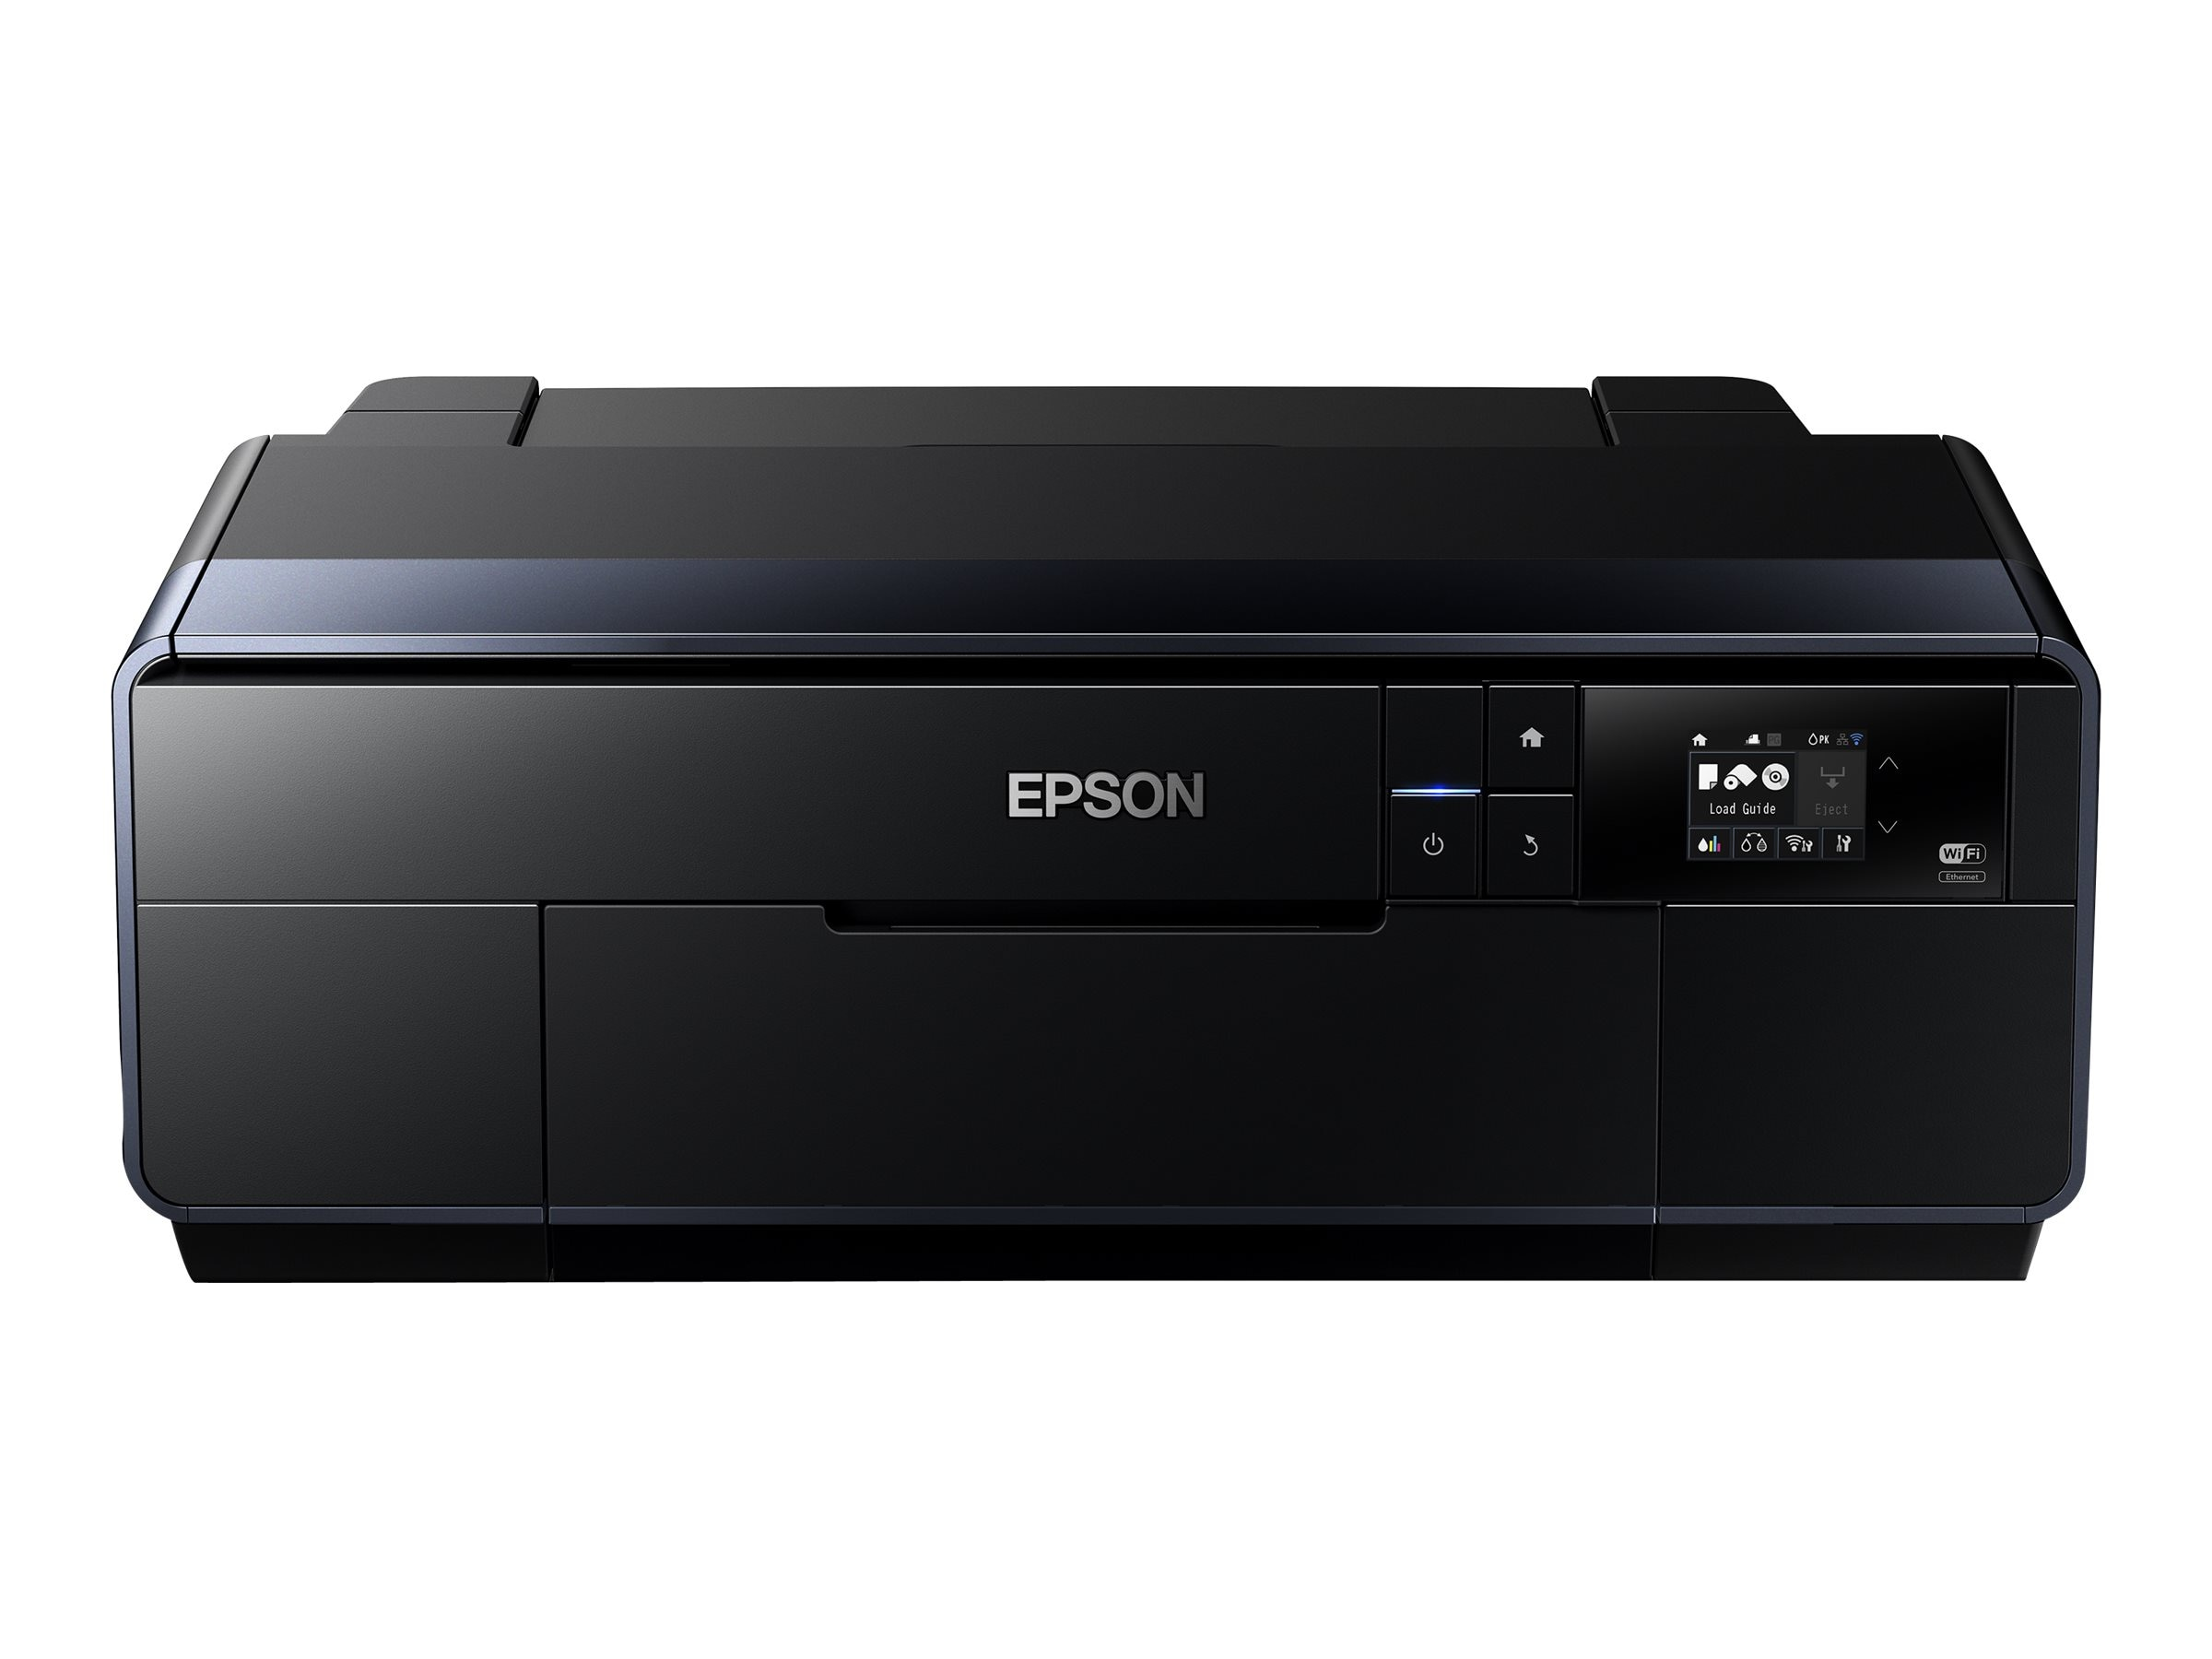 Epson SureColor P600 Wide Format Inkjet Printer, C11CE21201, 18532451, Printers - Ink-jet